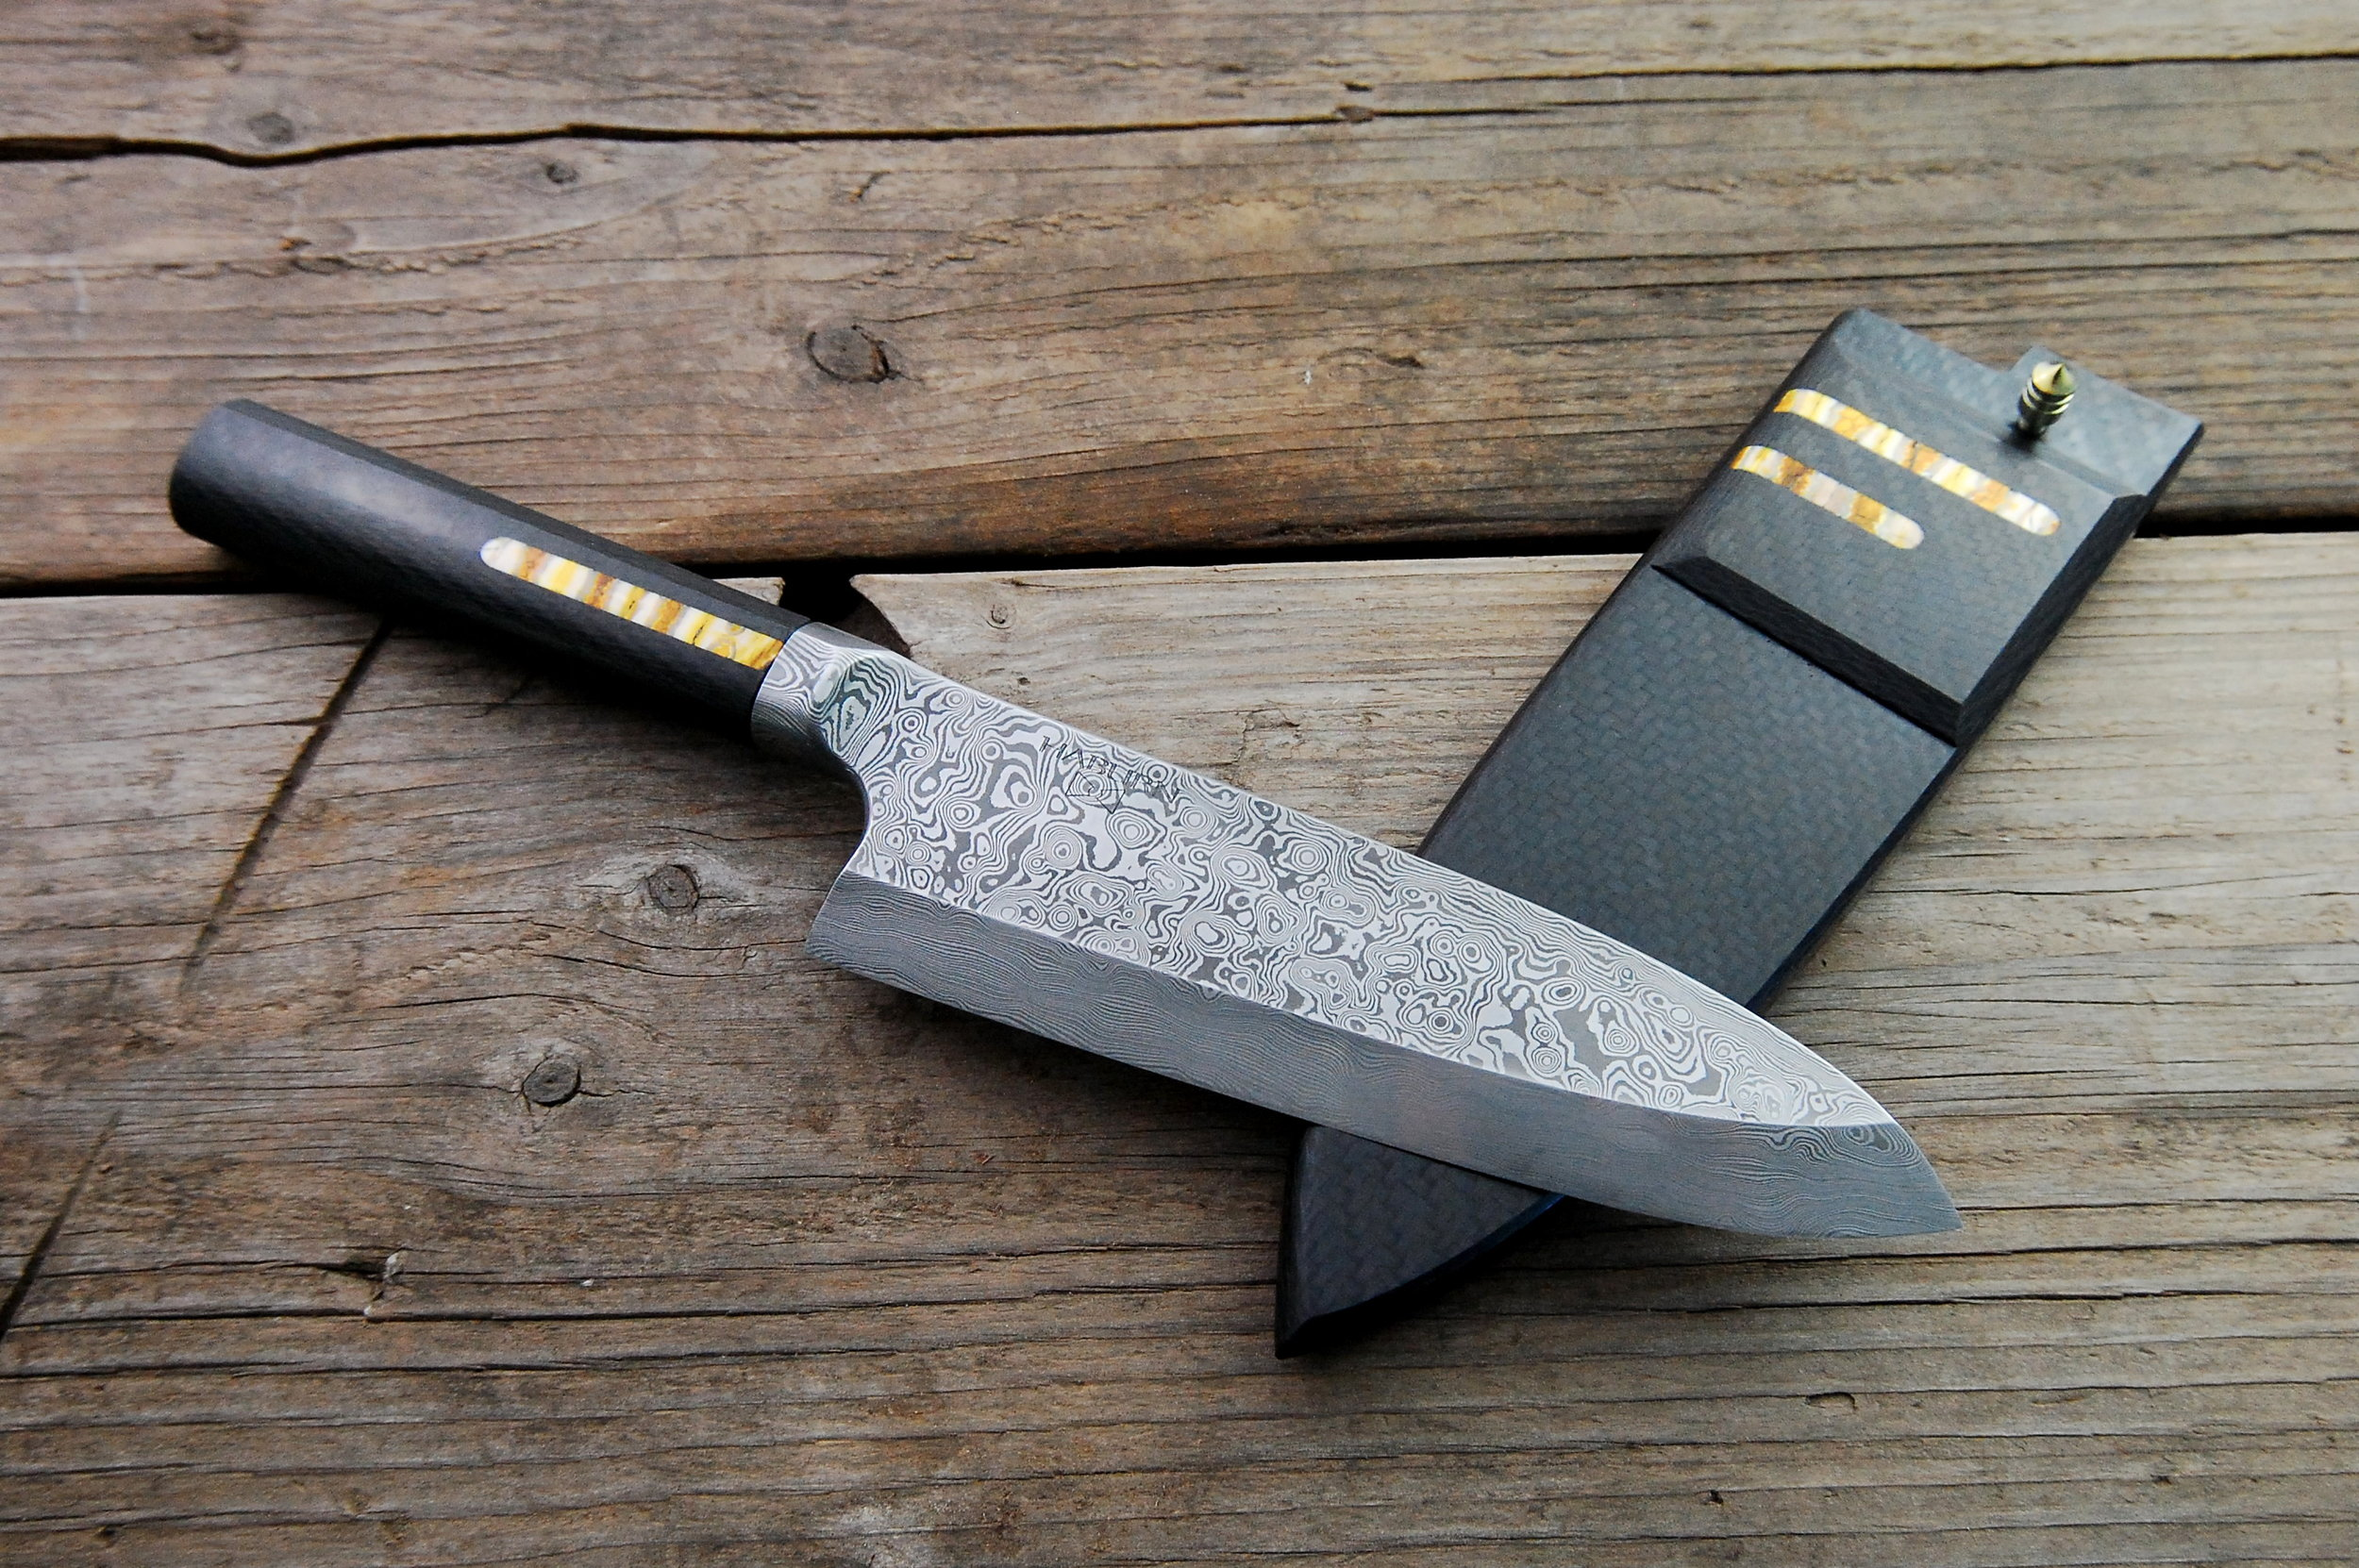 Custom Damascus Integral Deba handled in carbon fiber with yellow mammoth tooth inlays.